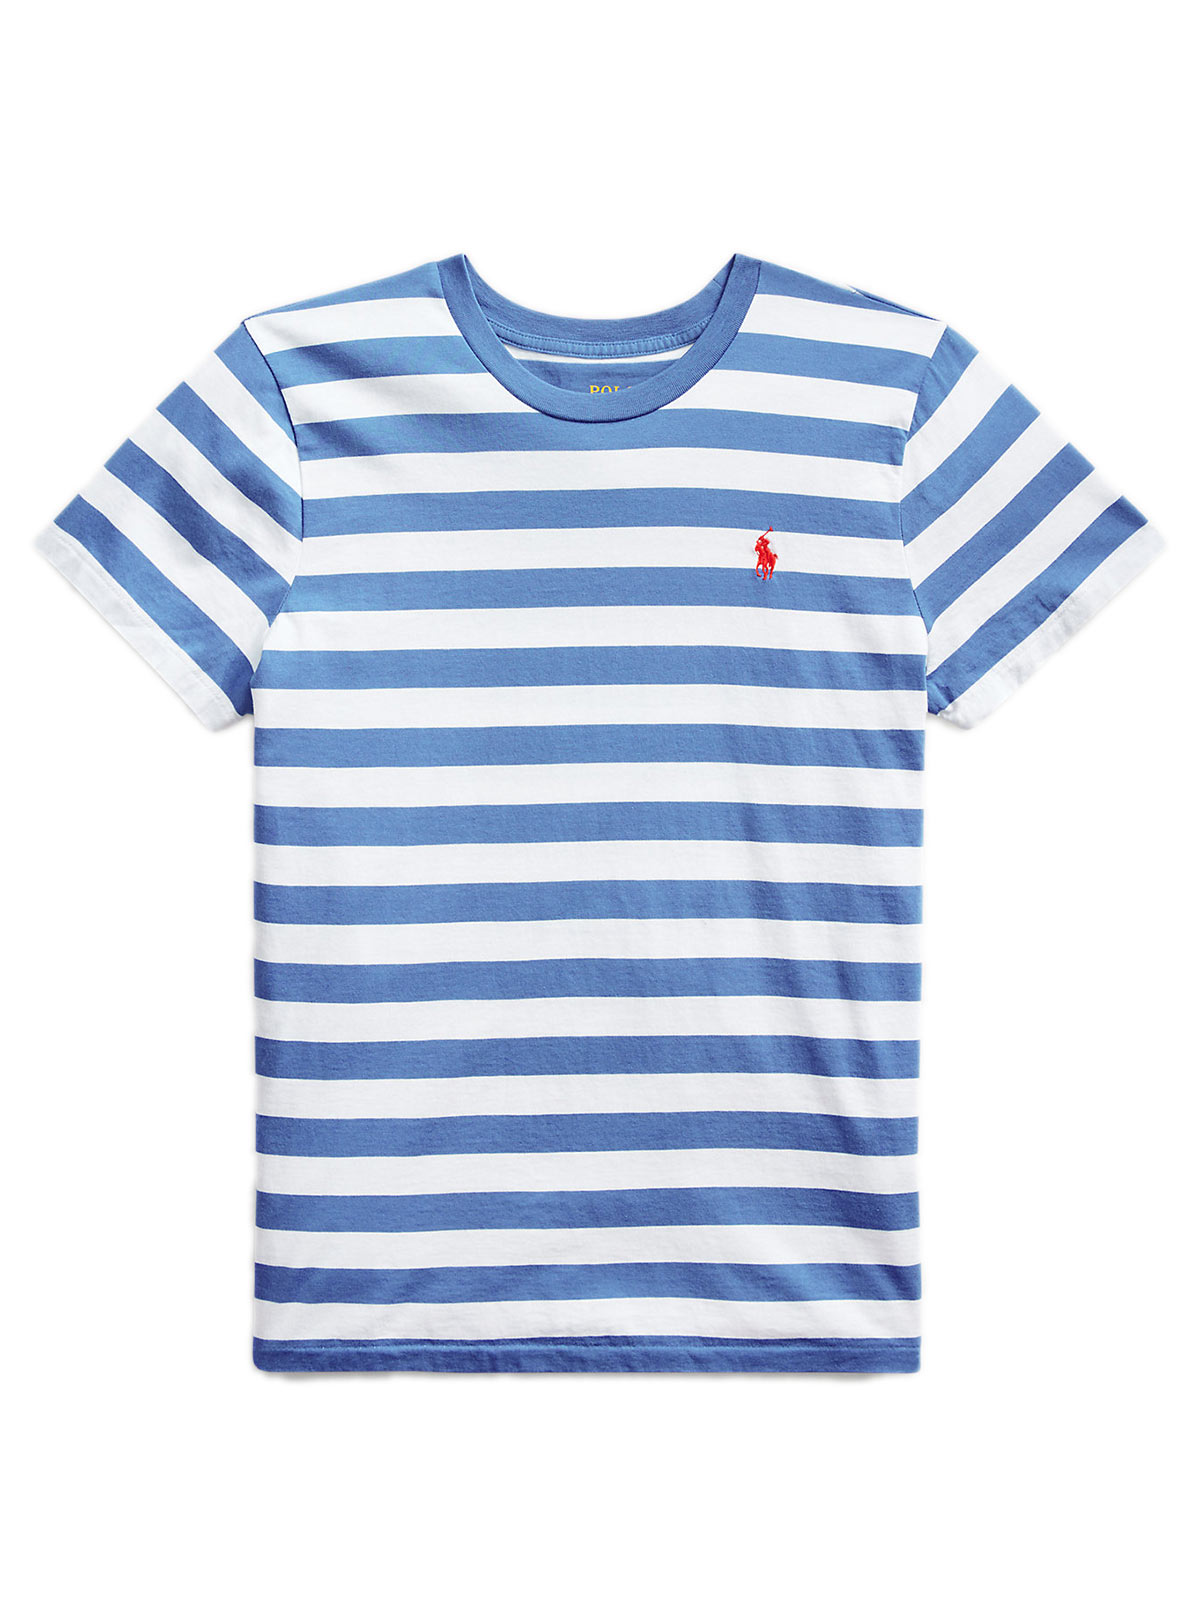 Immagine di POLO RALPH LAUREN | T-shirt Donna a Righe